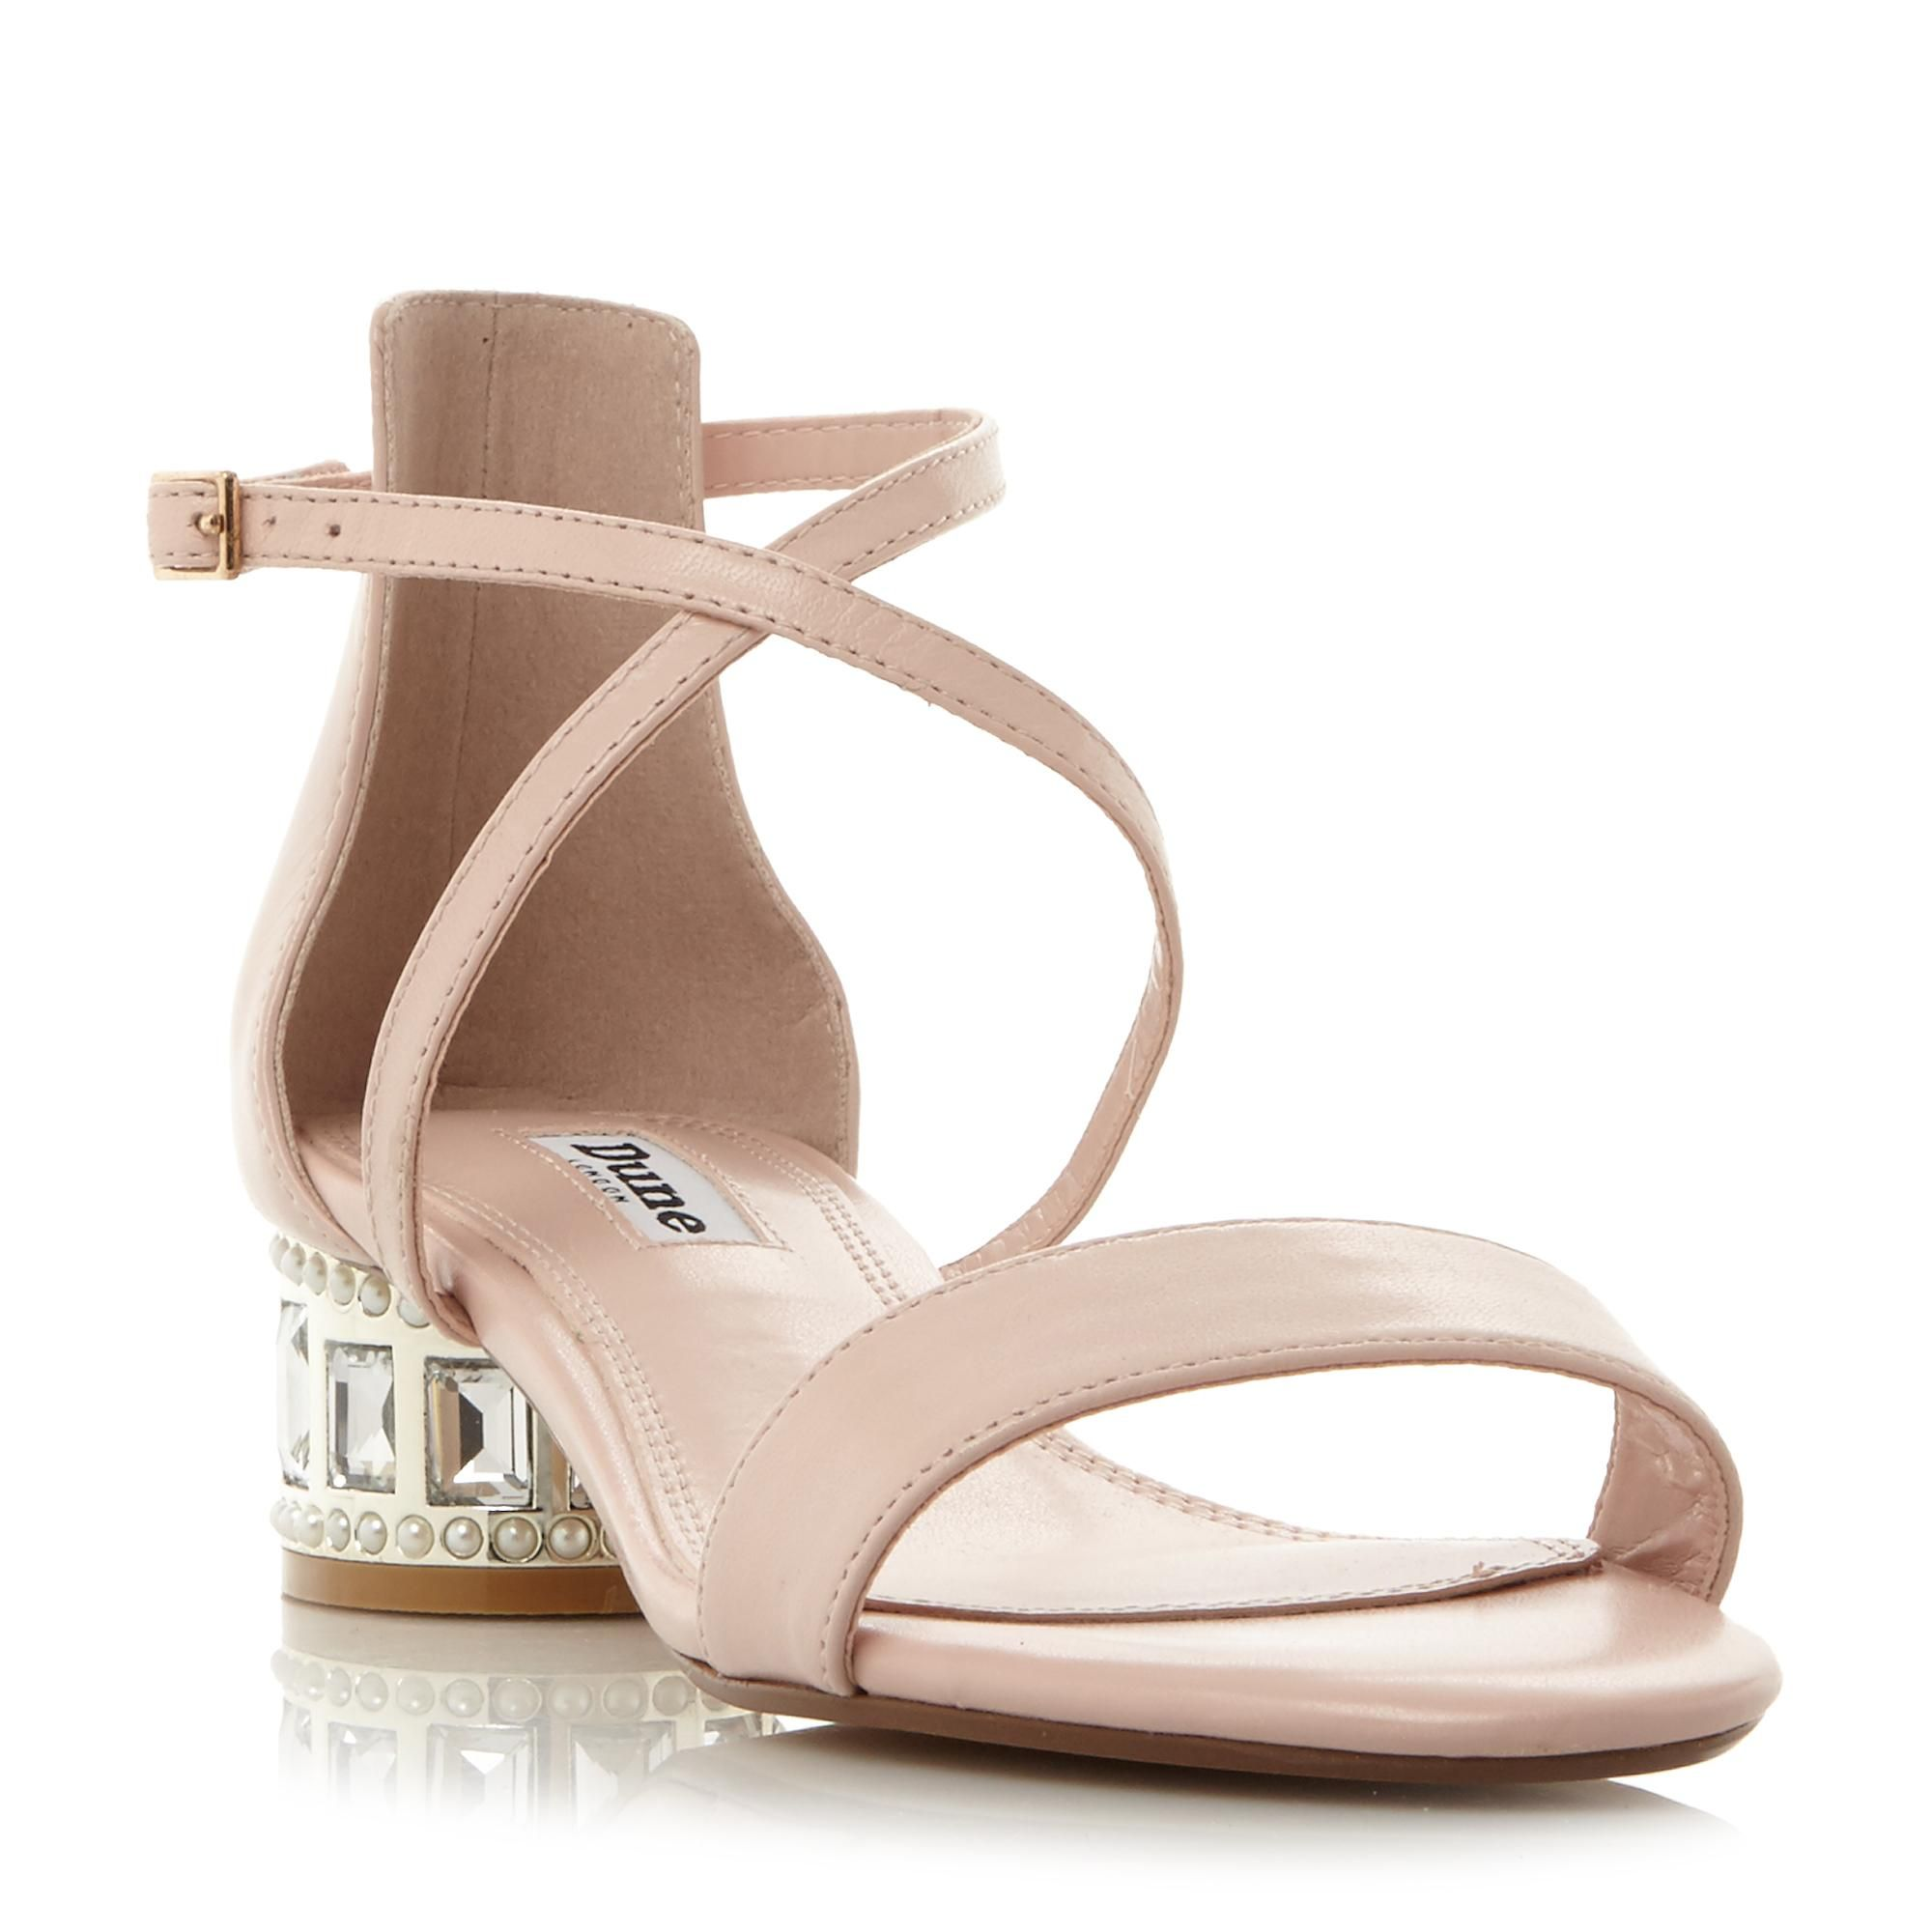 018ca6ddbc4 DUNE LADIES MERMAID - Jewel And Pearl Embellished Heel Sandal - blush |  Dune Shoes Online